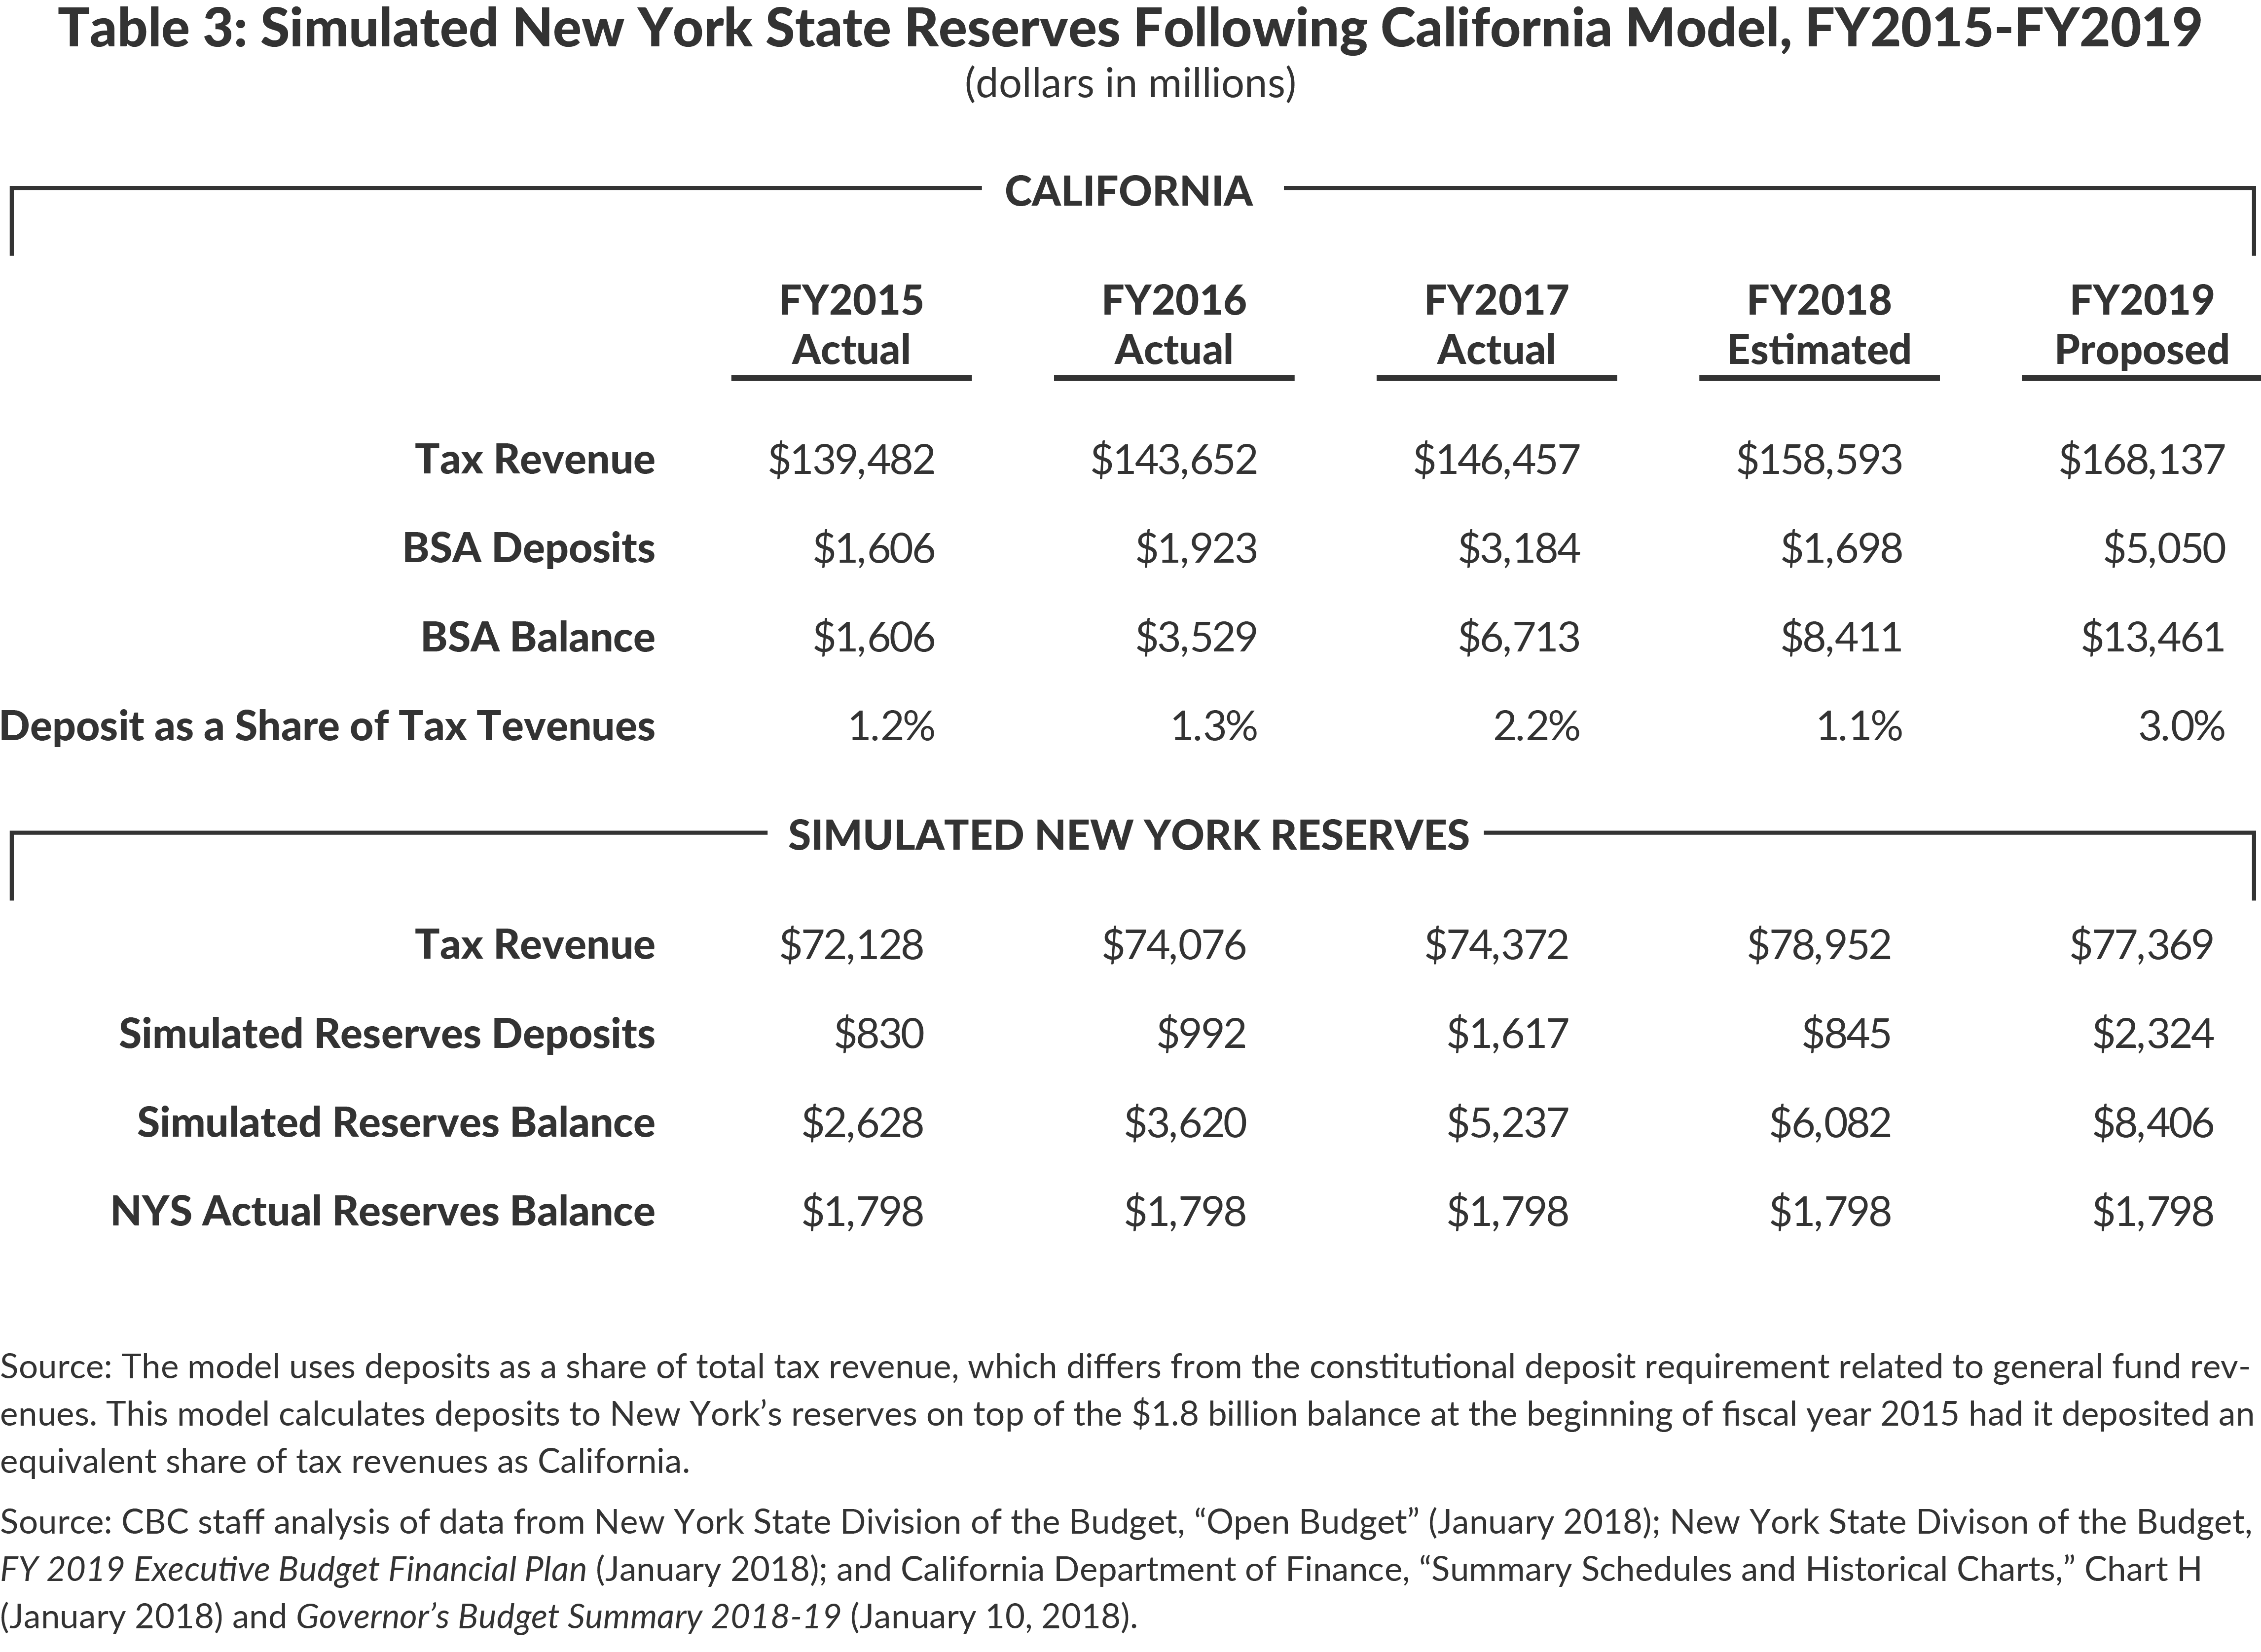 Table 3: Simulated New York State Reserves Following California Model, FY2015-FY2019